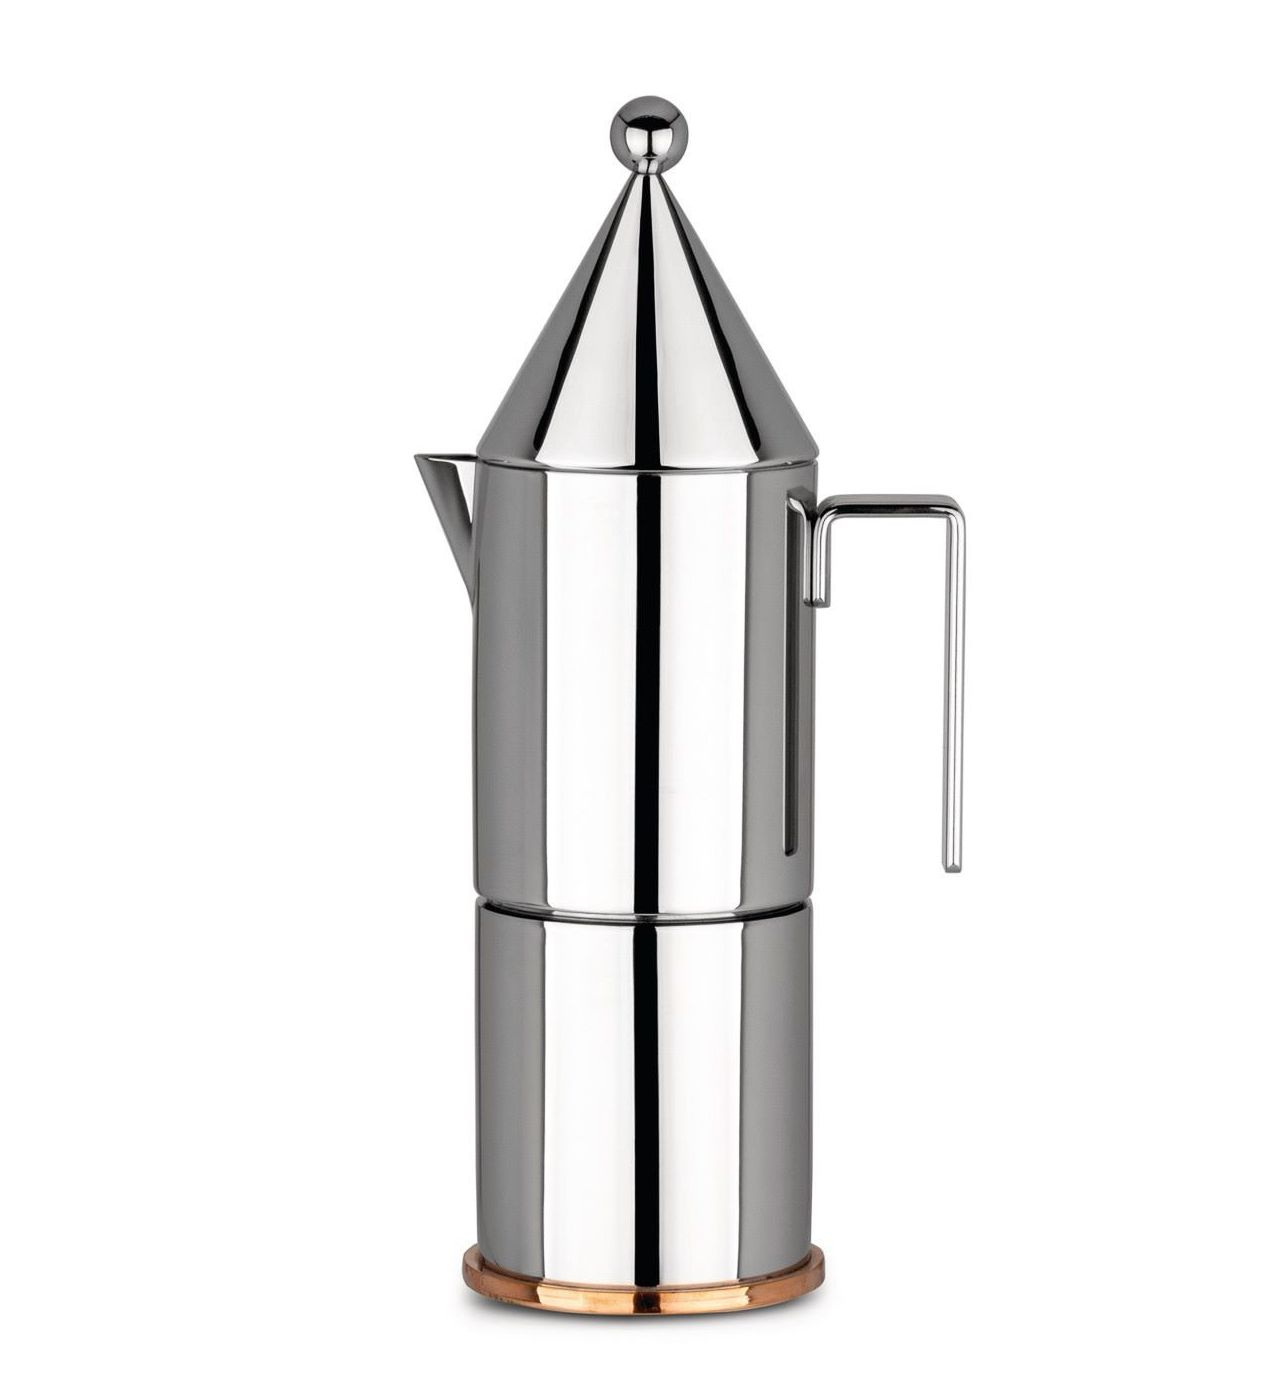 Alessi Percolator 90002/6 La Conica Door Aldo Rossi - 6 Kops